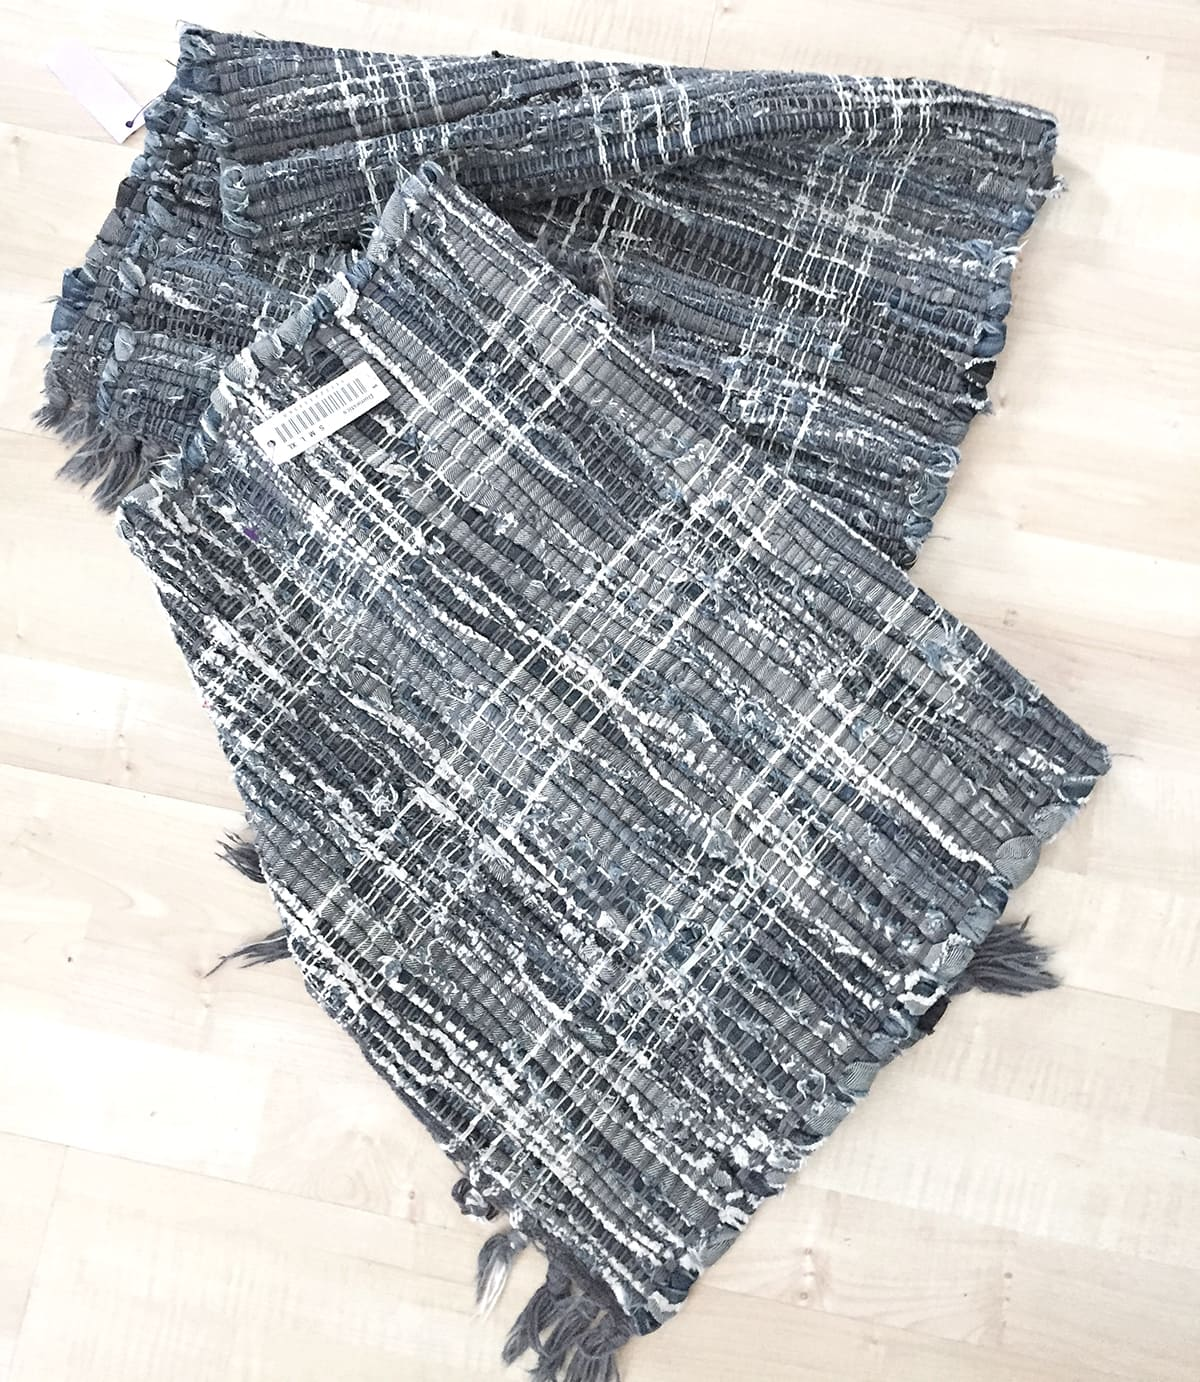 goodwill_jeans_rugs